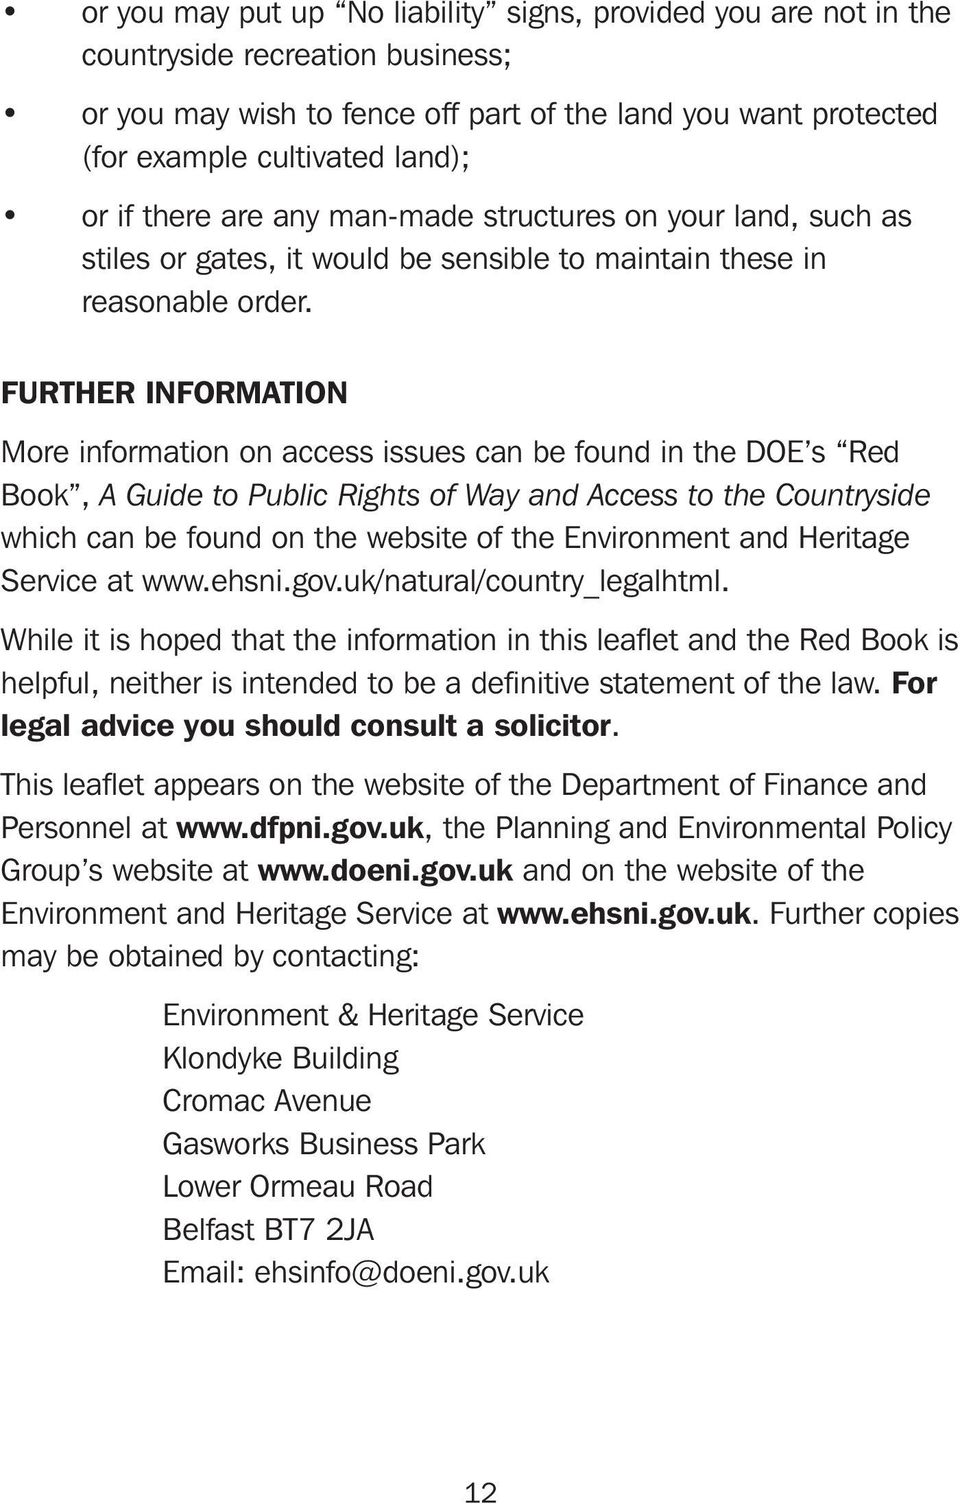 FURTHER INFORMATION More information on access issues can be found in the DOE s Red Book, A Guide to Public Rights of Way and Access to the Countryside which can be found on the website of the